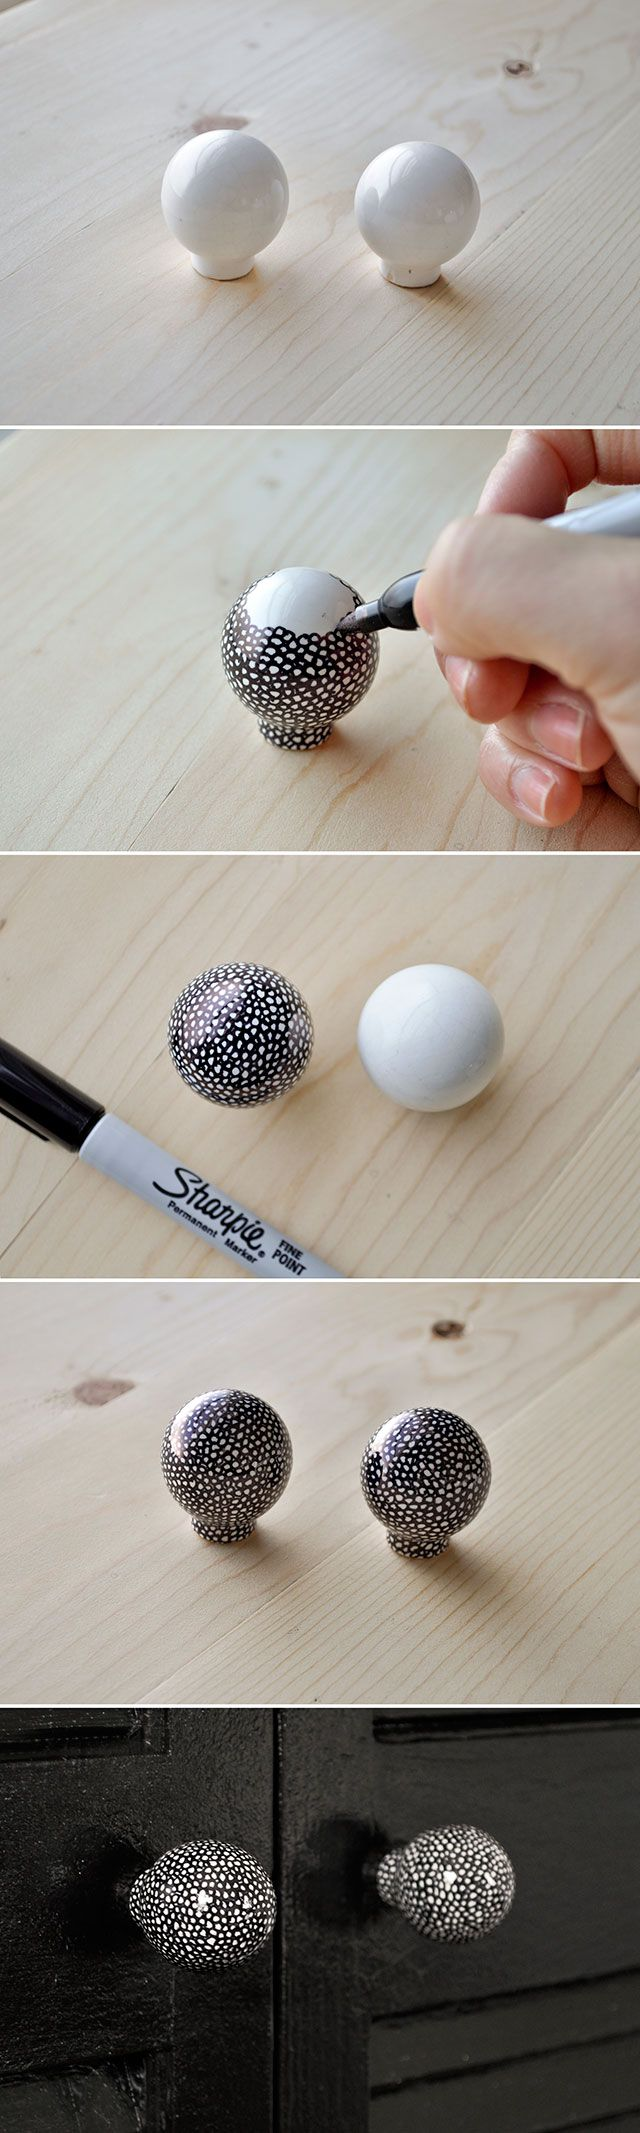 DIY :: use a sharpie to draw little circles on plain white ceramic knobs for a fun speckled look